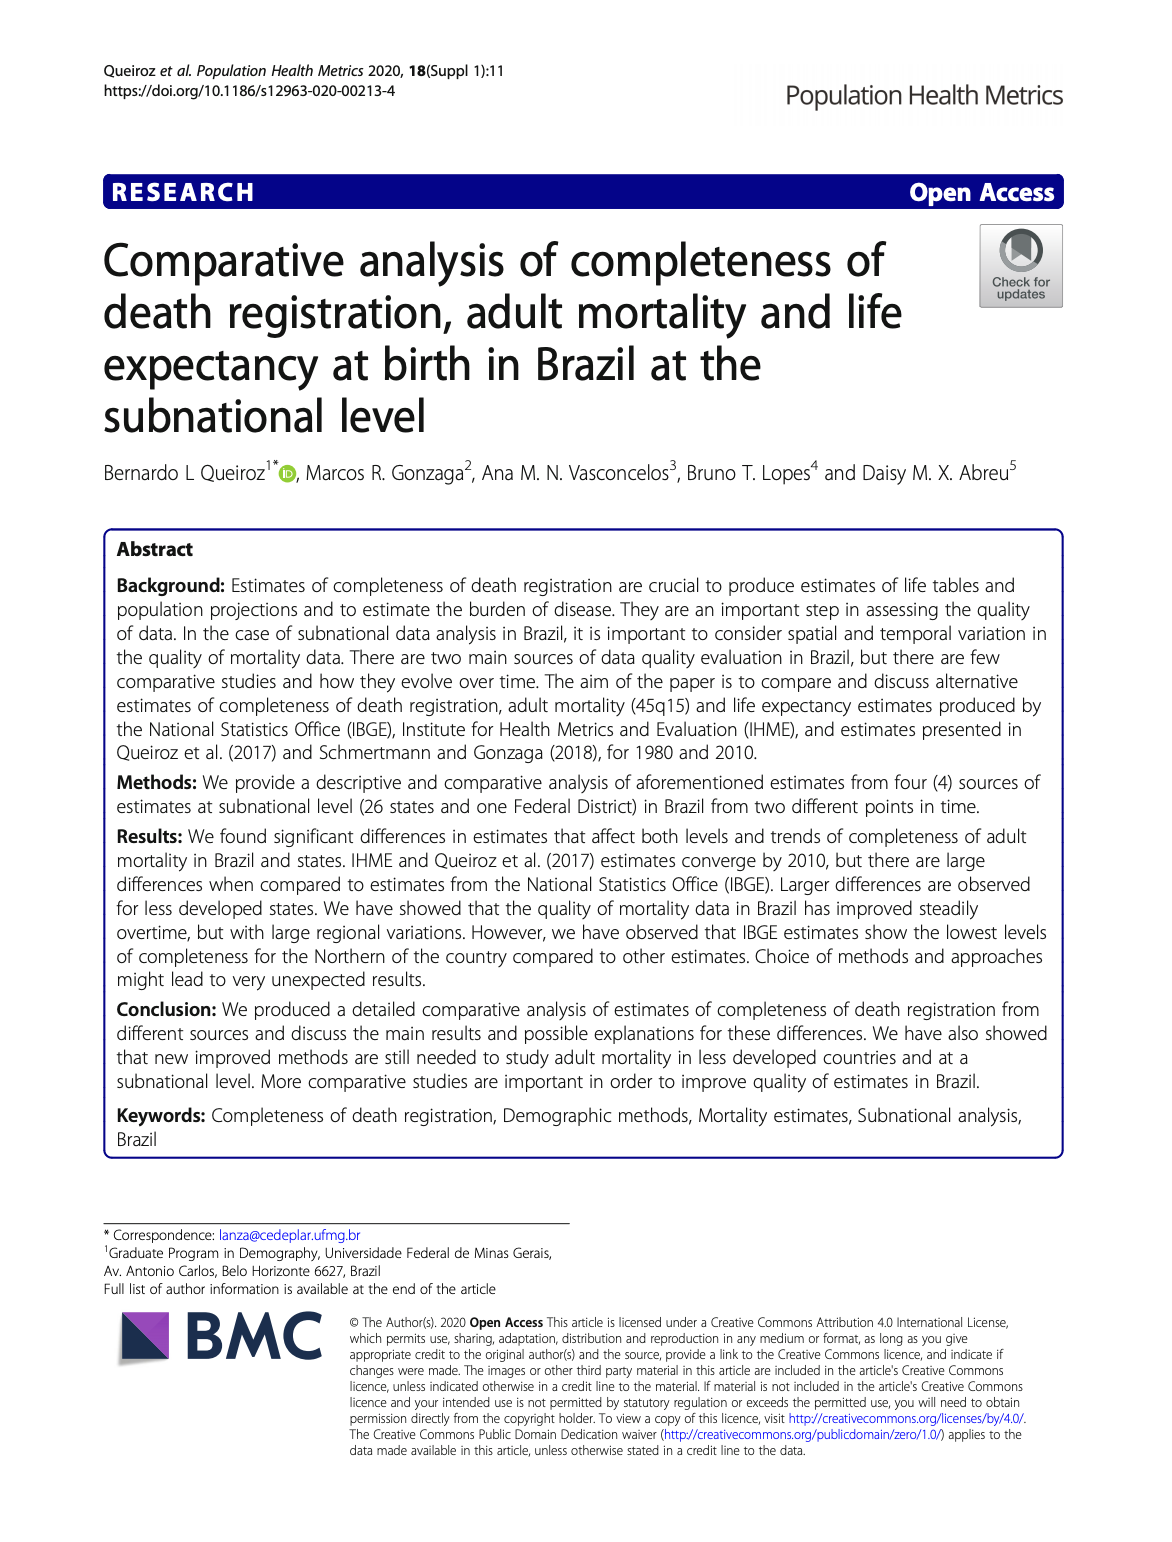 Comparative analysis of completeness of death registration, adult mortality and life expectancy at birth in Brazil at the subnational level thumbnail